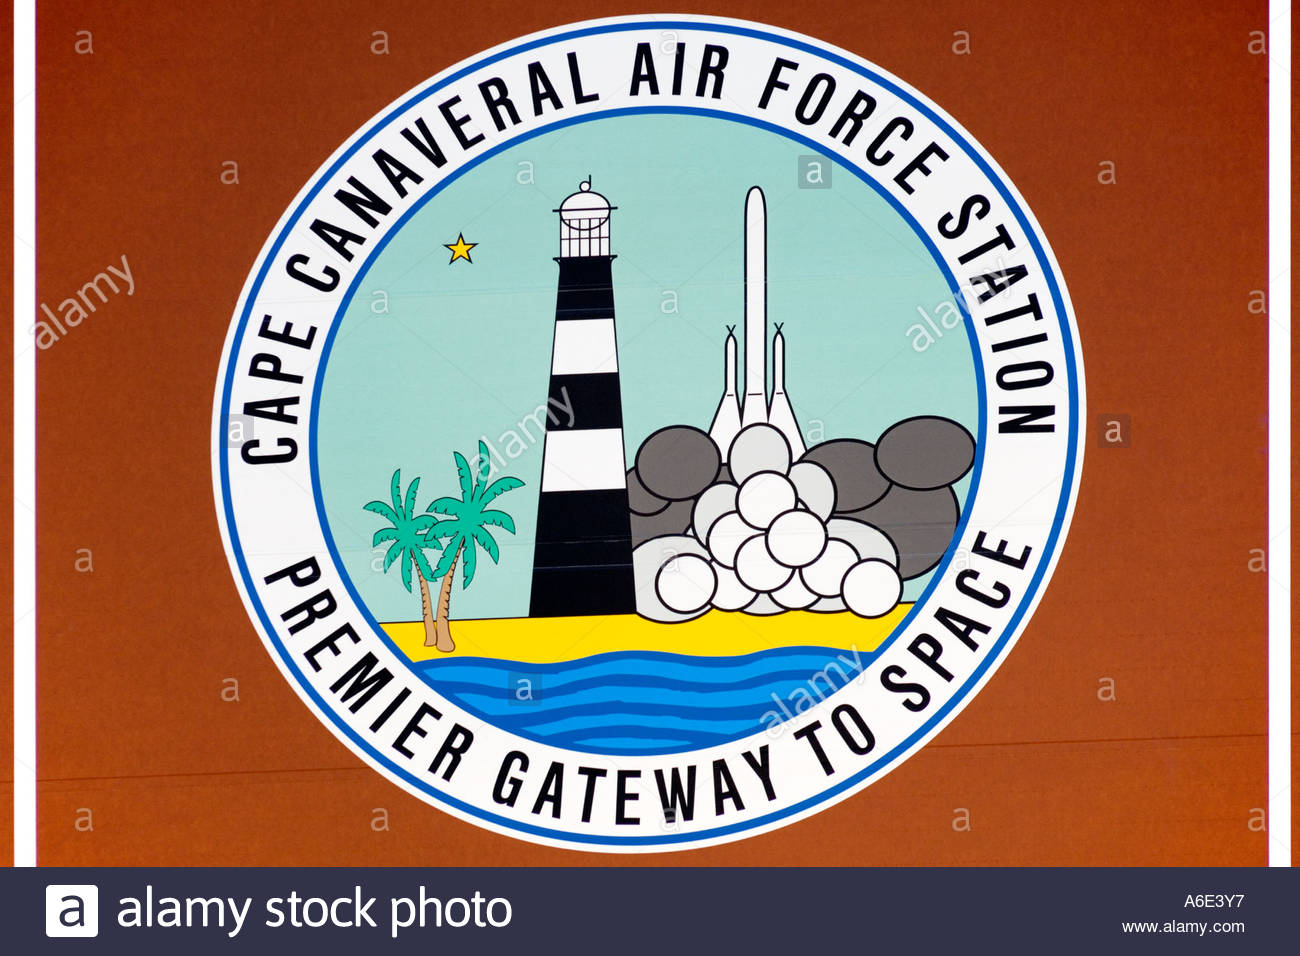 Cape Canaveral Air Force Station Nasa John F Kennedy Space Center.